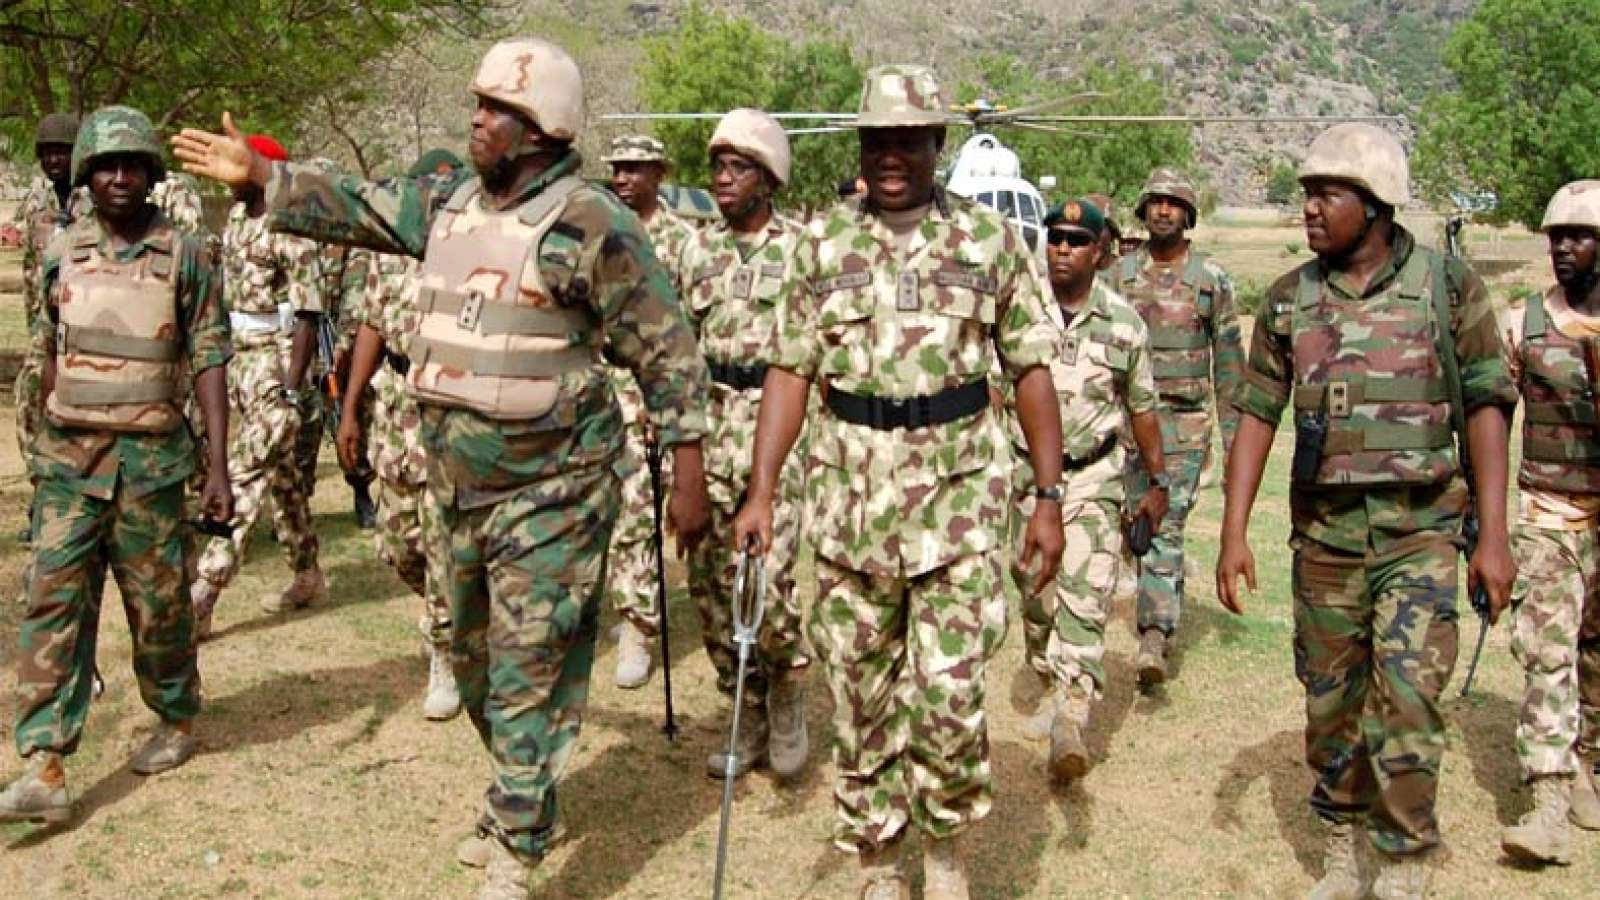 8 soldiers killed, 3 missing in Boko Haram ambush on military convoy in Borno